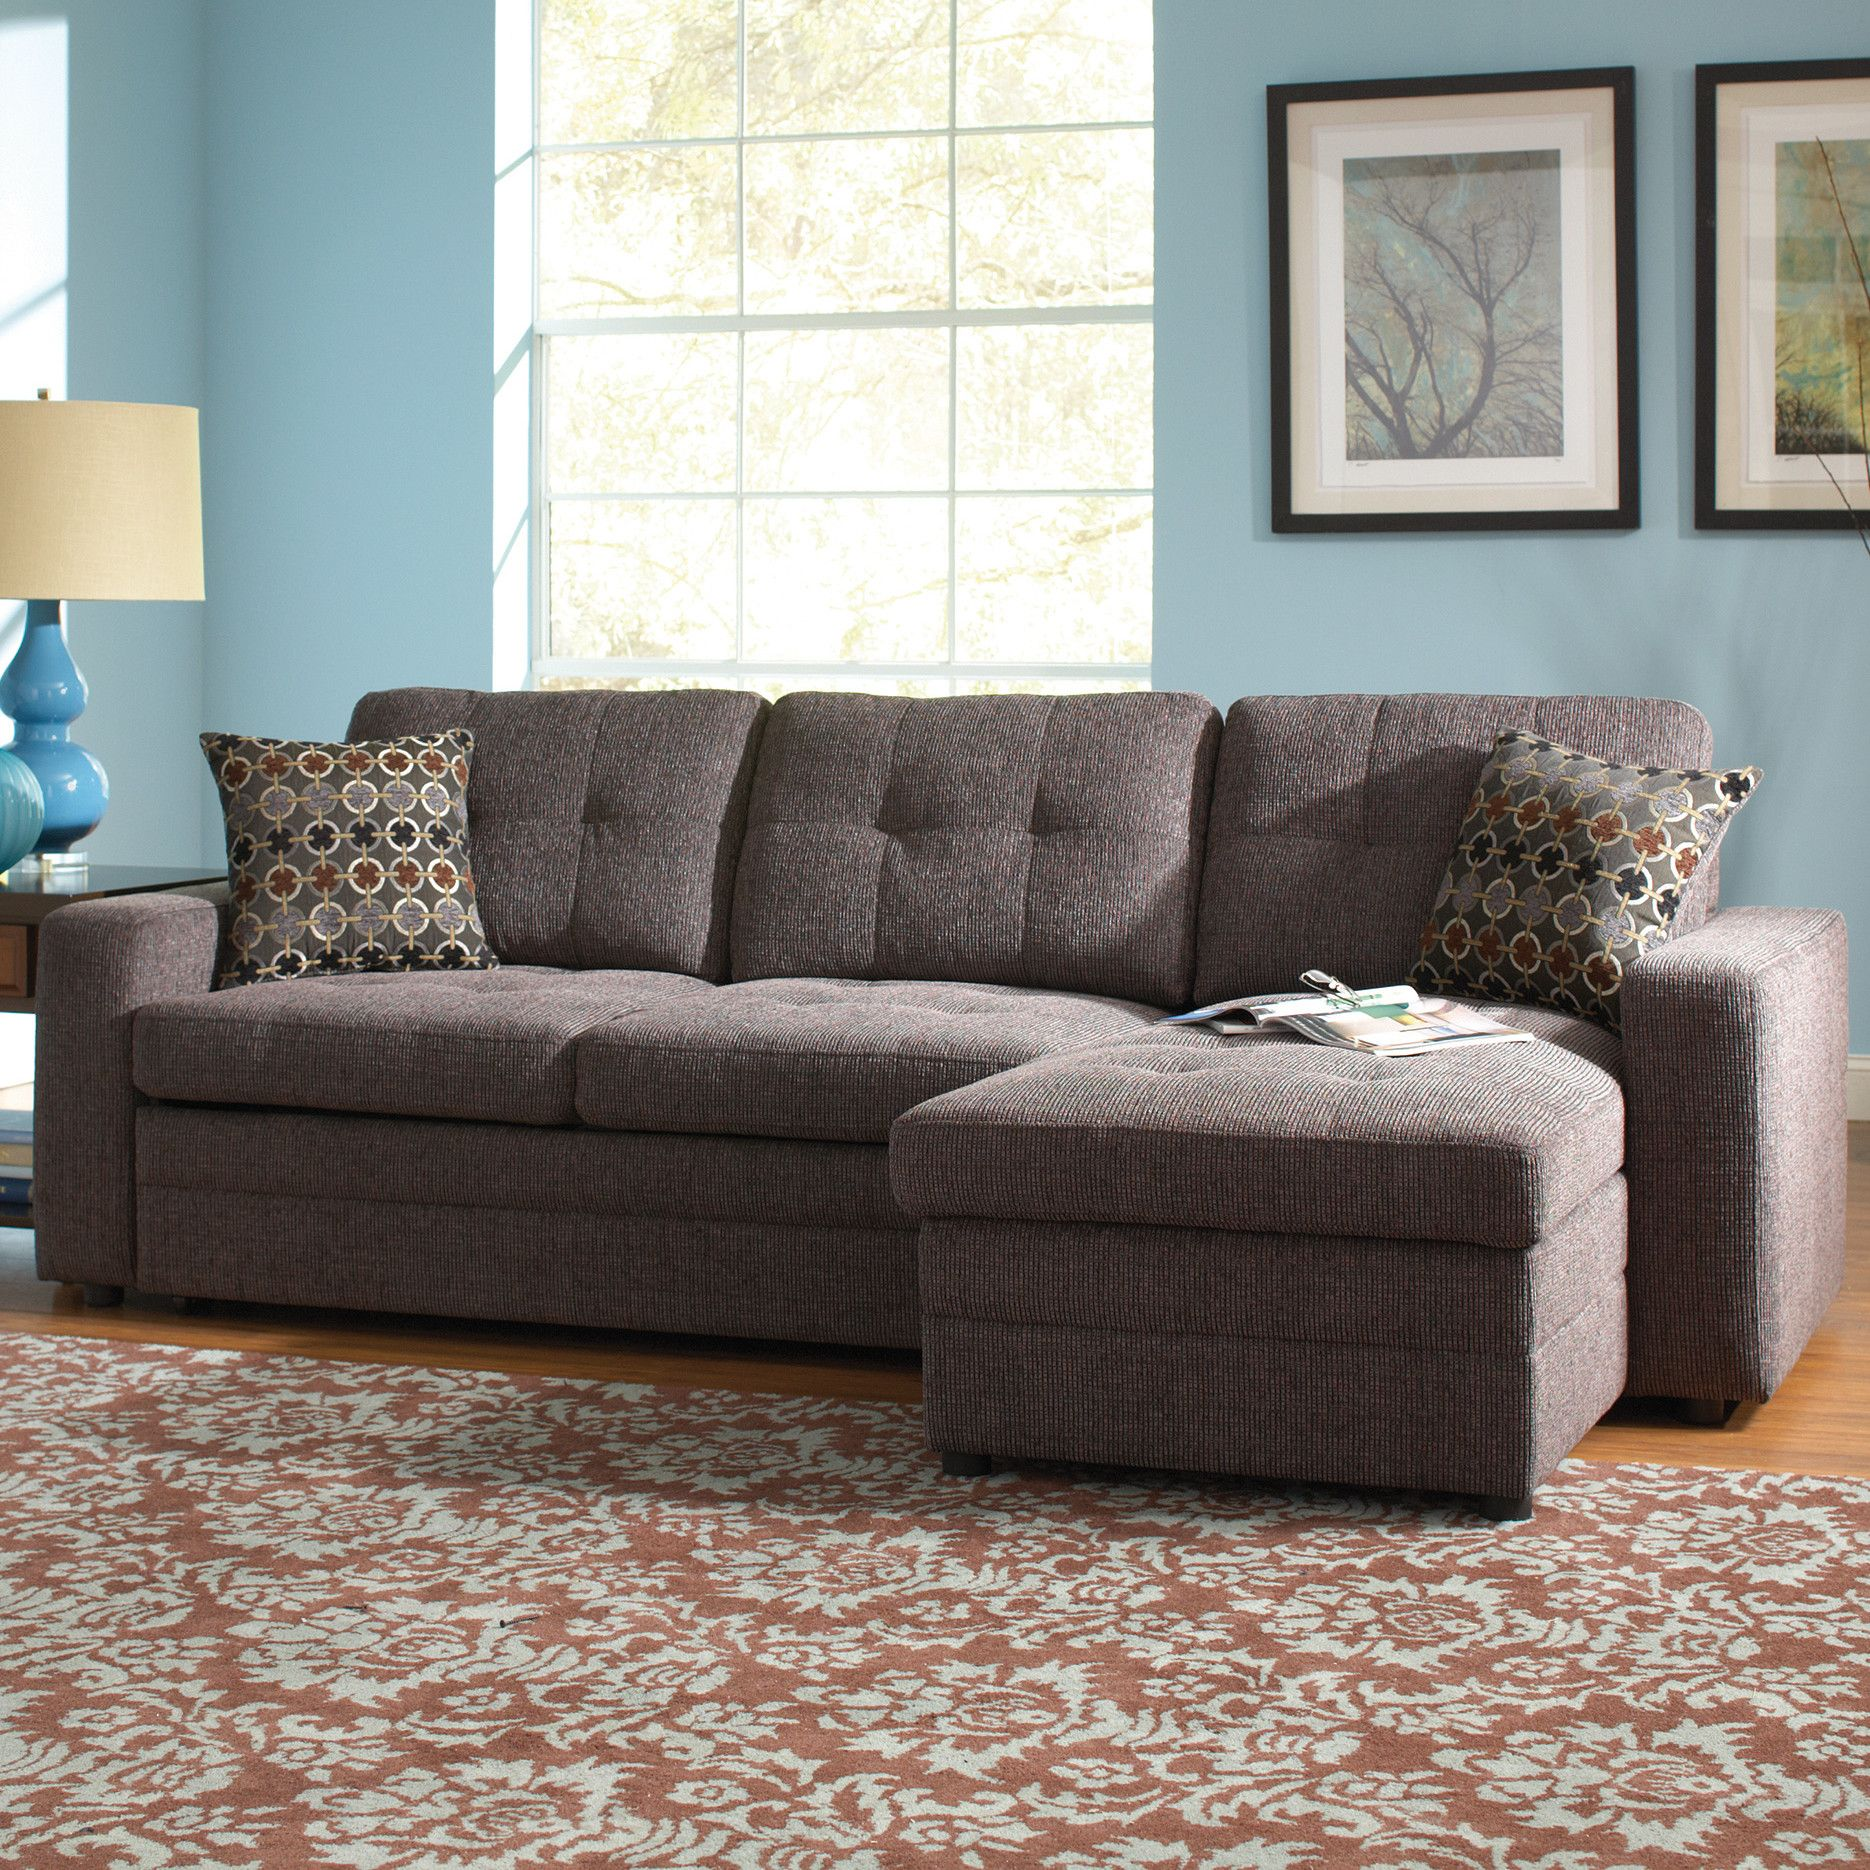 Surprising Chanelle Right Hand Facing Sleeper Sectional With Ottoman Forskolin Free Trial Chair Design Images Forskolin Free Trialorg